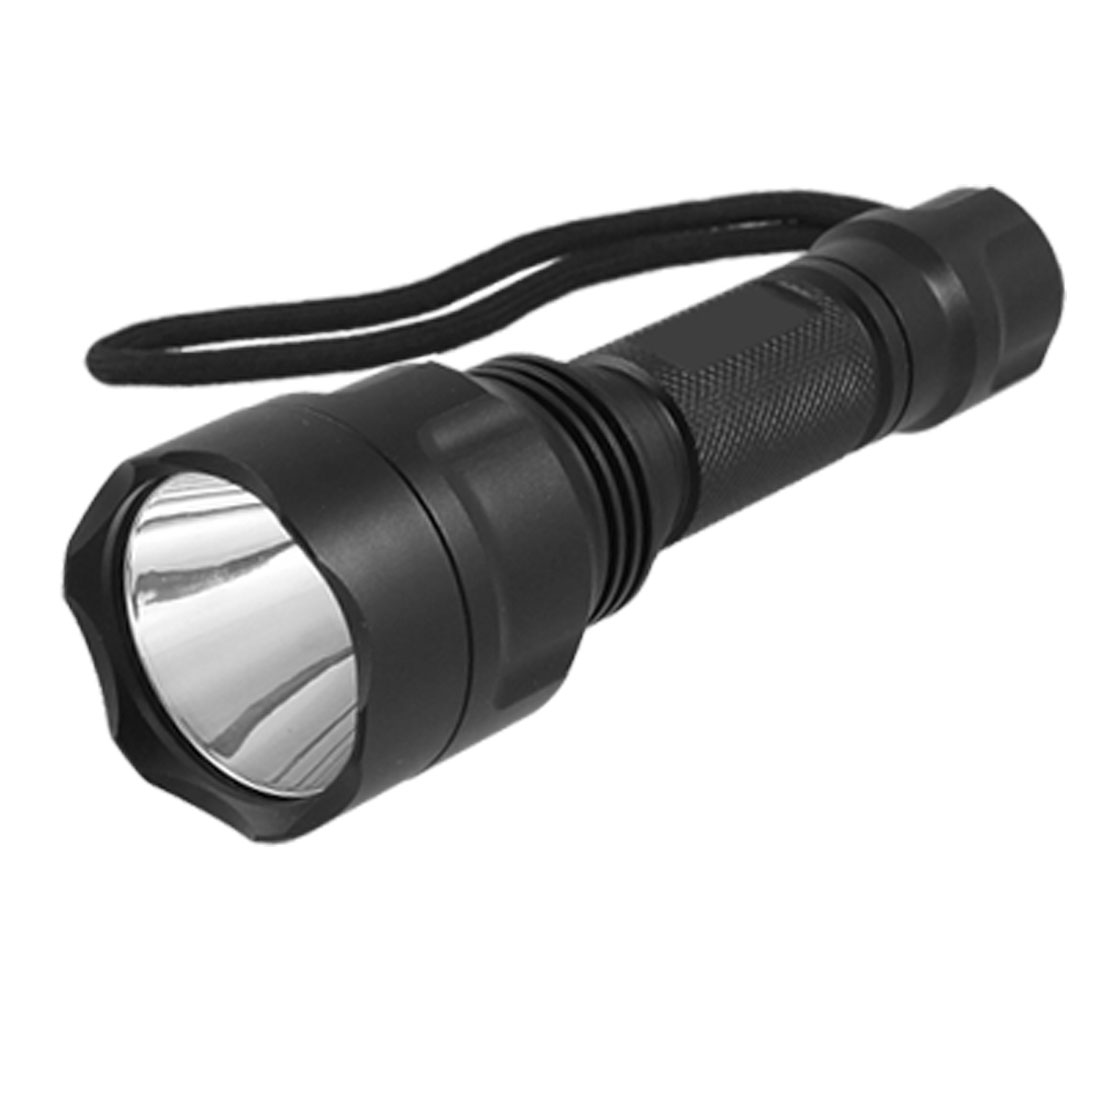 US Plug AC100 - 240V Ultra Bright 230LM 2W LED 5 Modes Flashlight Torch w 18650 Charger Black